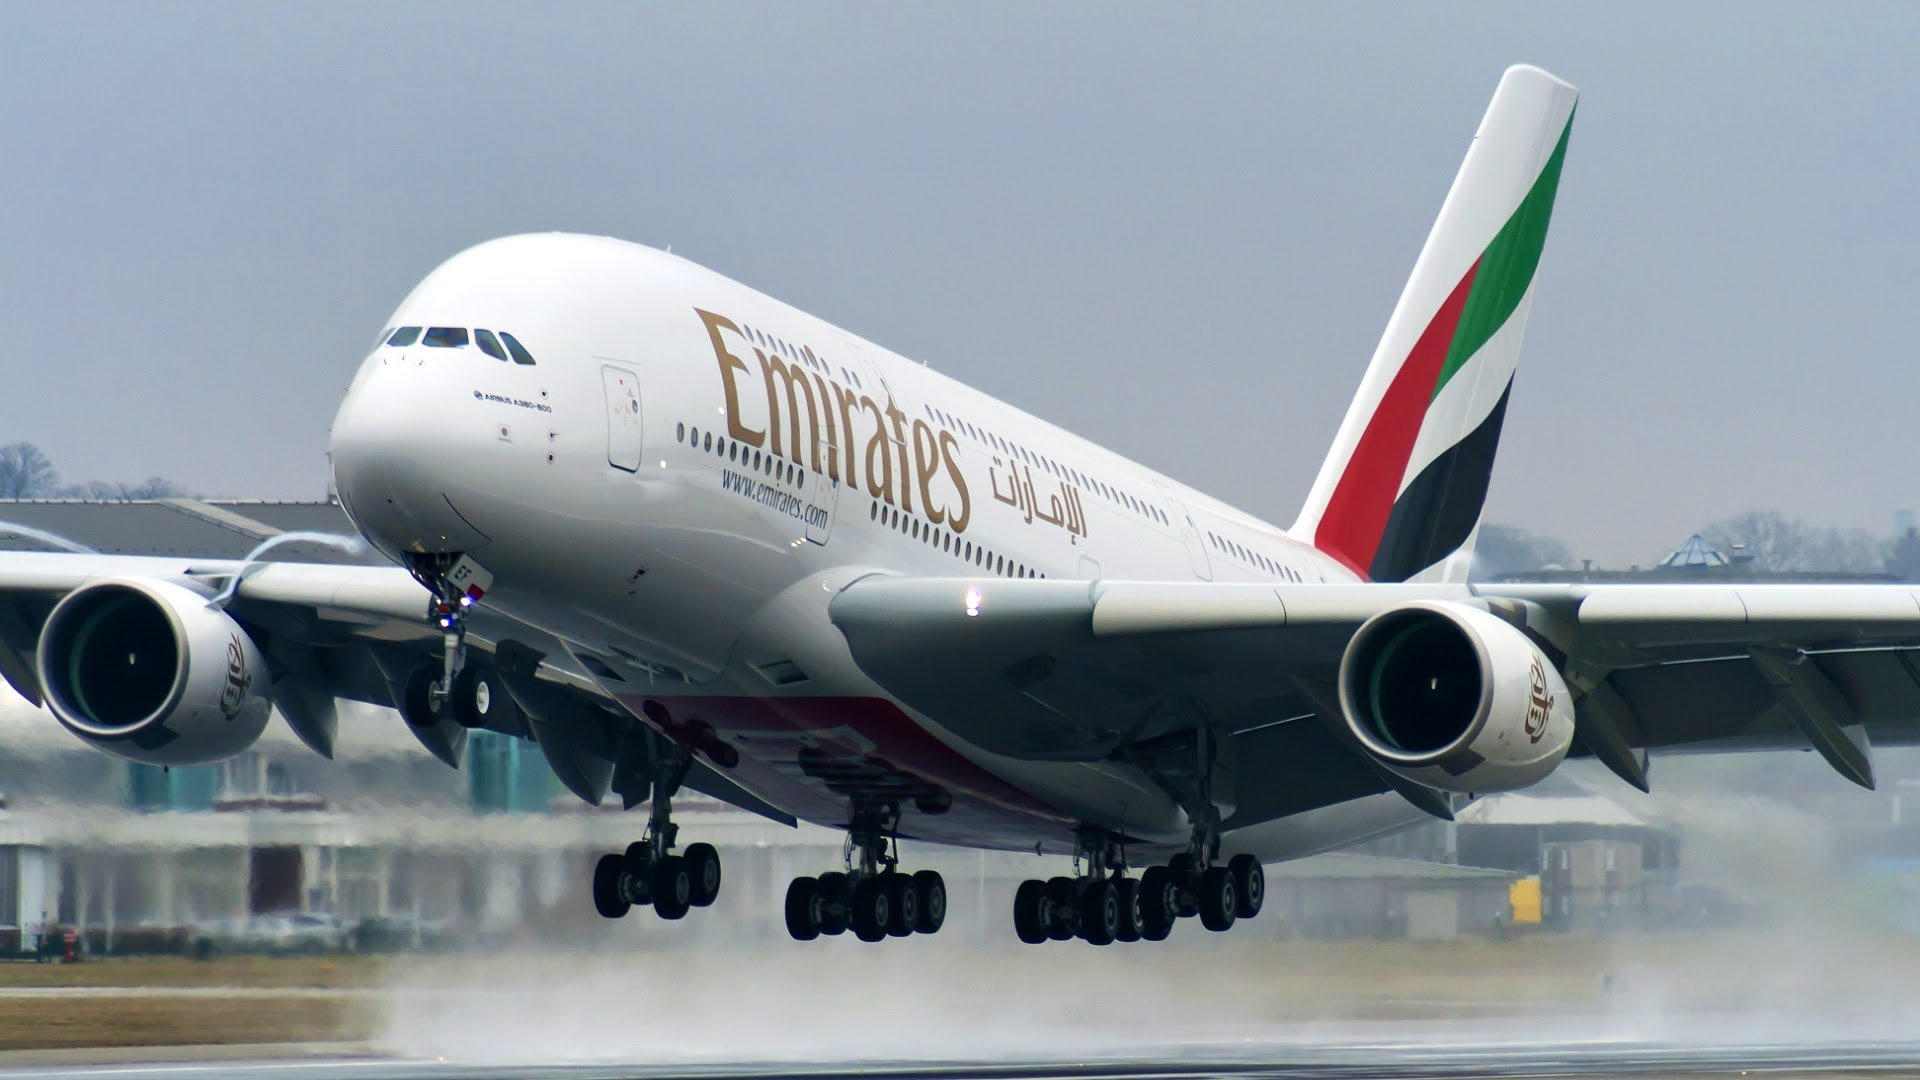 Amazing Airbus A380   First Flight of A6 EEF   Takeoff at 1920x1080